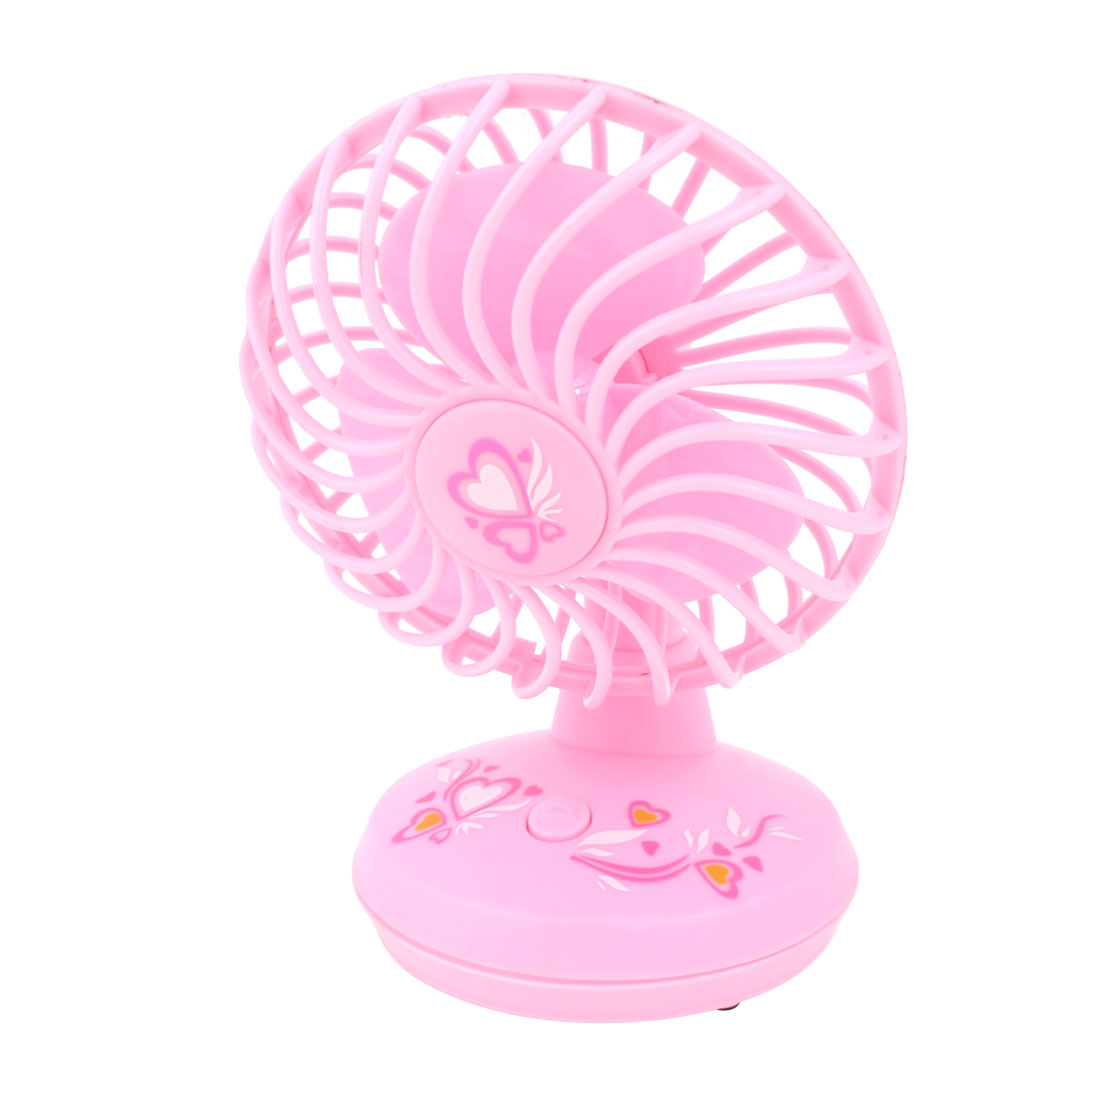 Office Traveling 3 Flabellums PC Laptop Desktop Notebook Pink Plastic Round Shape Press Button Battery USB Fan